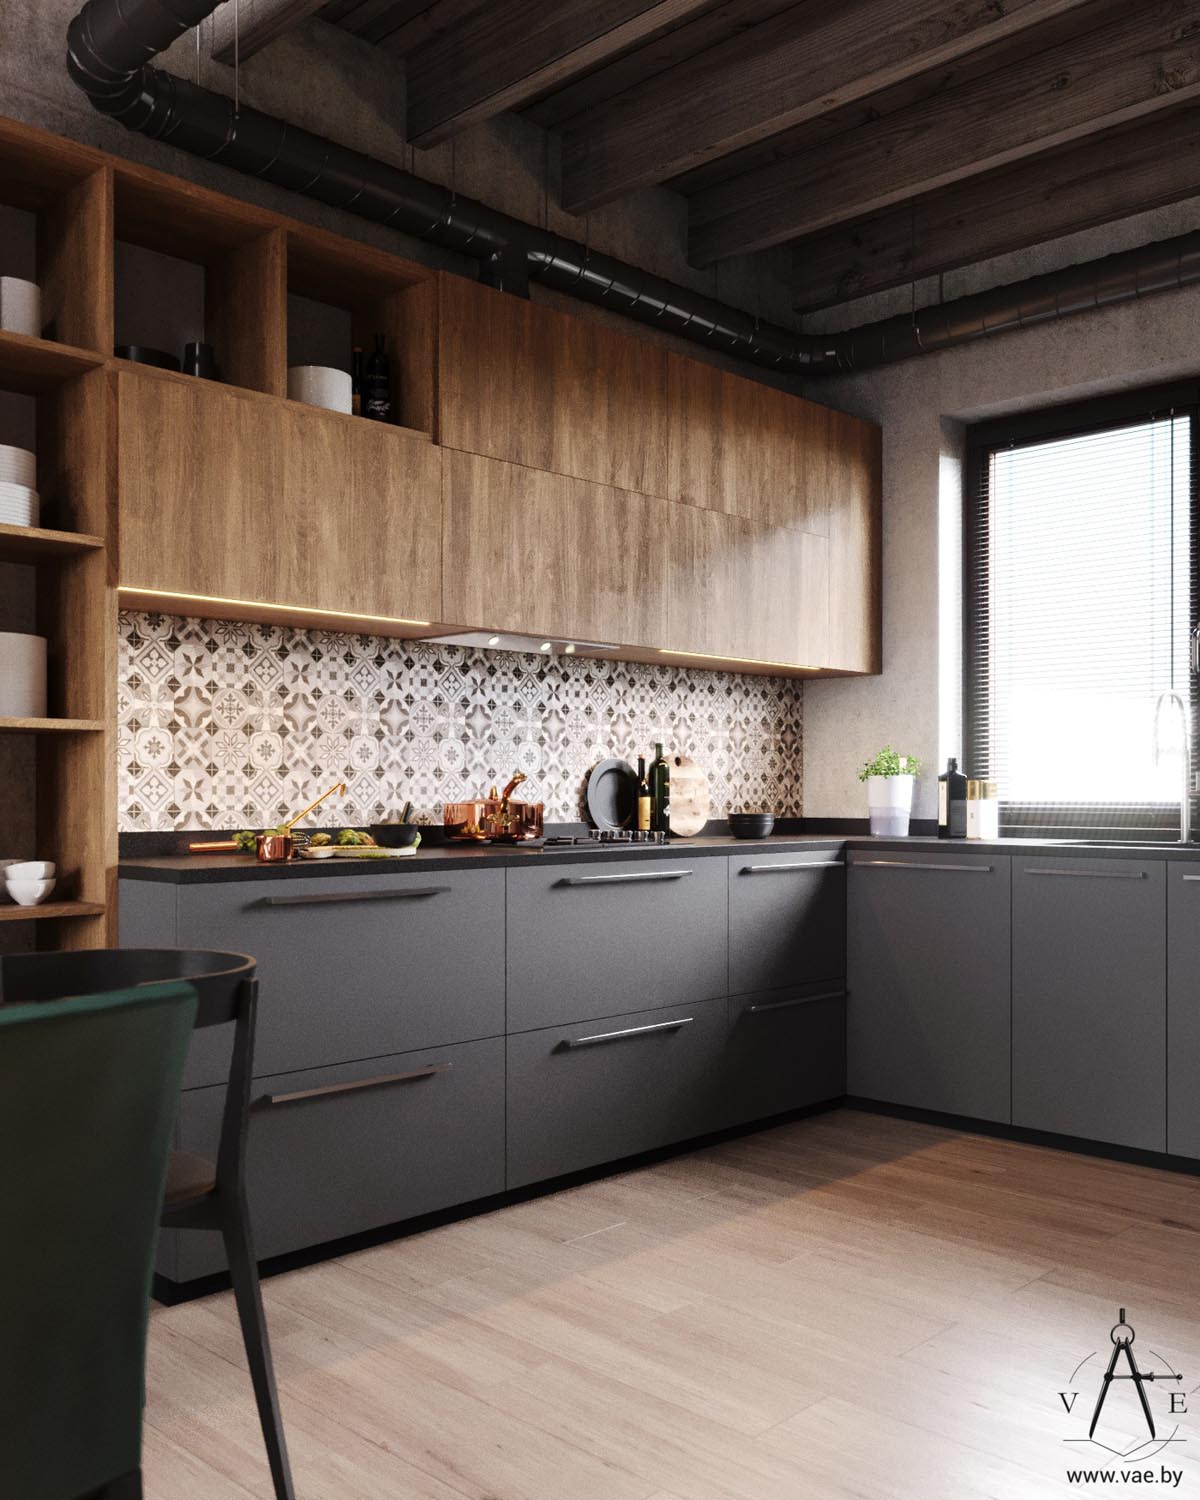 25 Best Ideas About Industrial Chic Kitchen On Pinterest: Warm Industrial Style House (With Layout